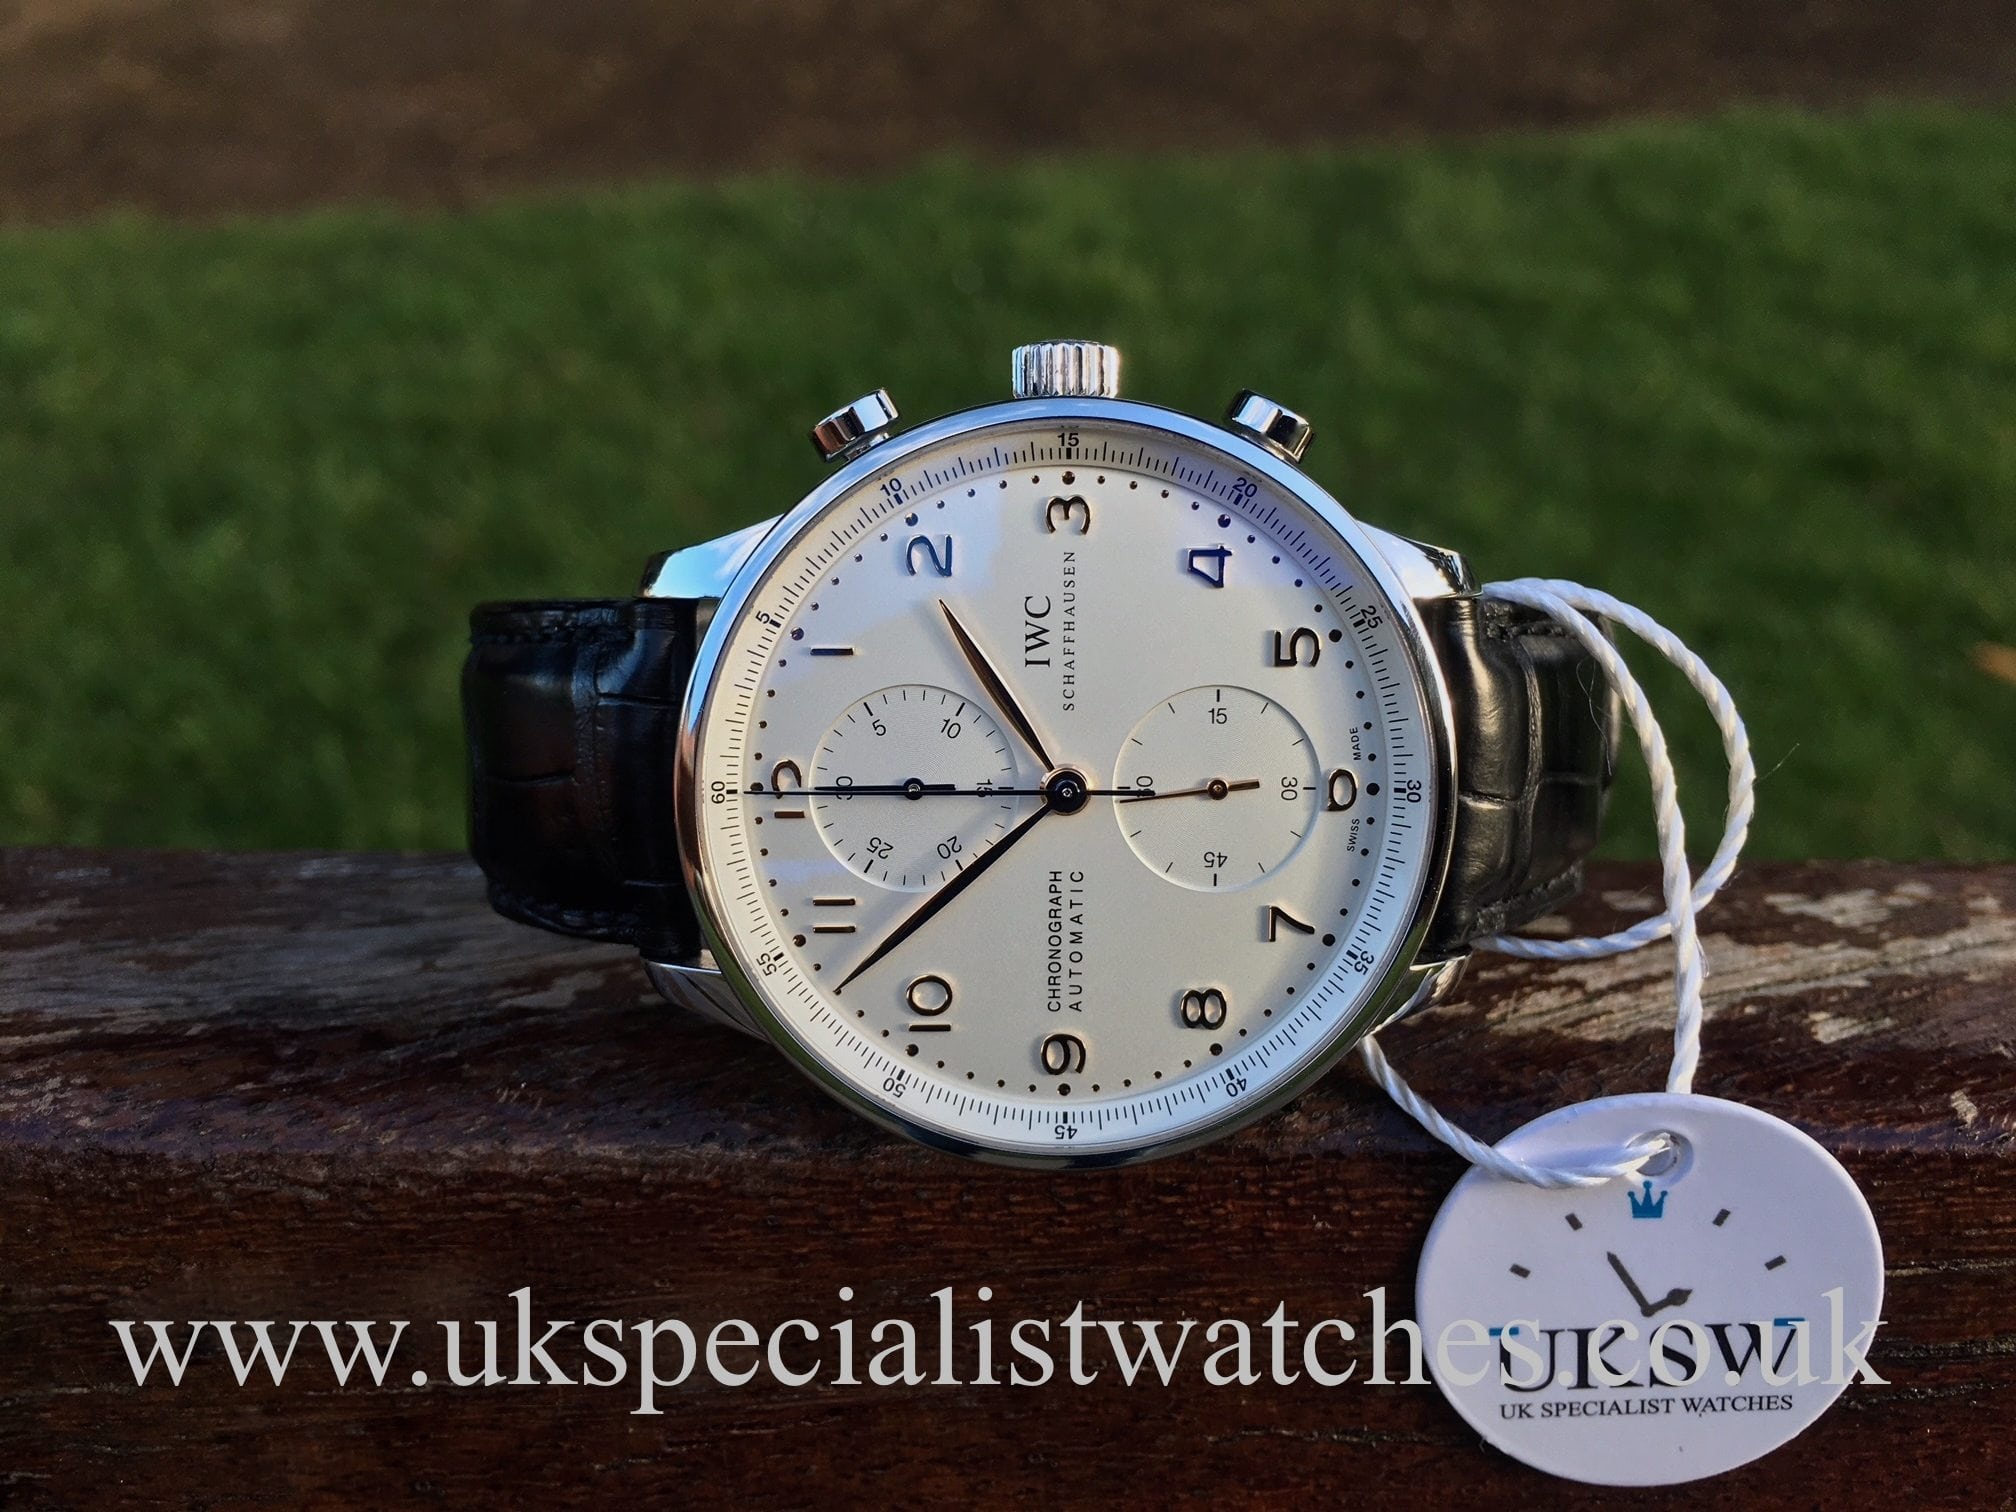 c9e21d2f0250 IWC Portuguese Chronograph - Stainless Steel - IW371445 - UK ...